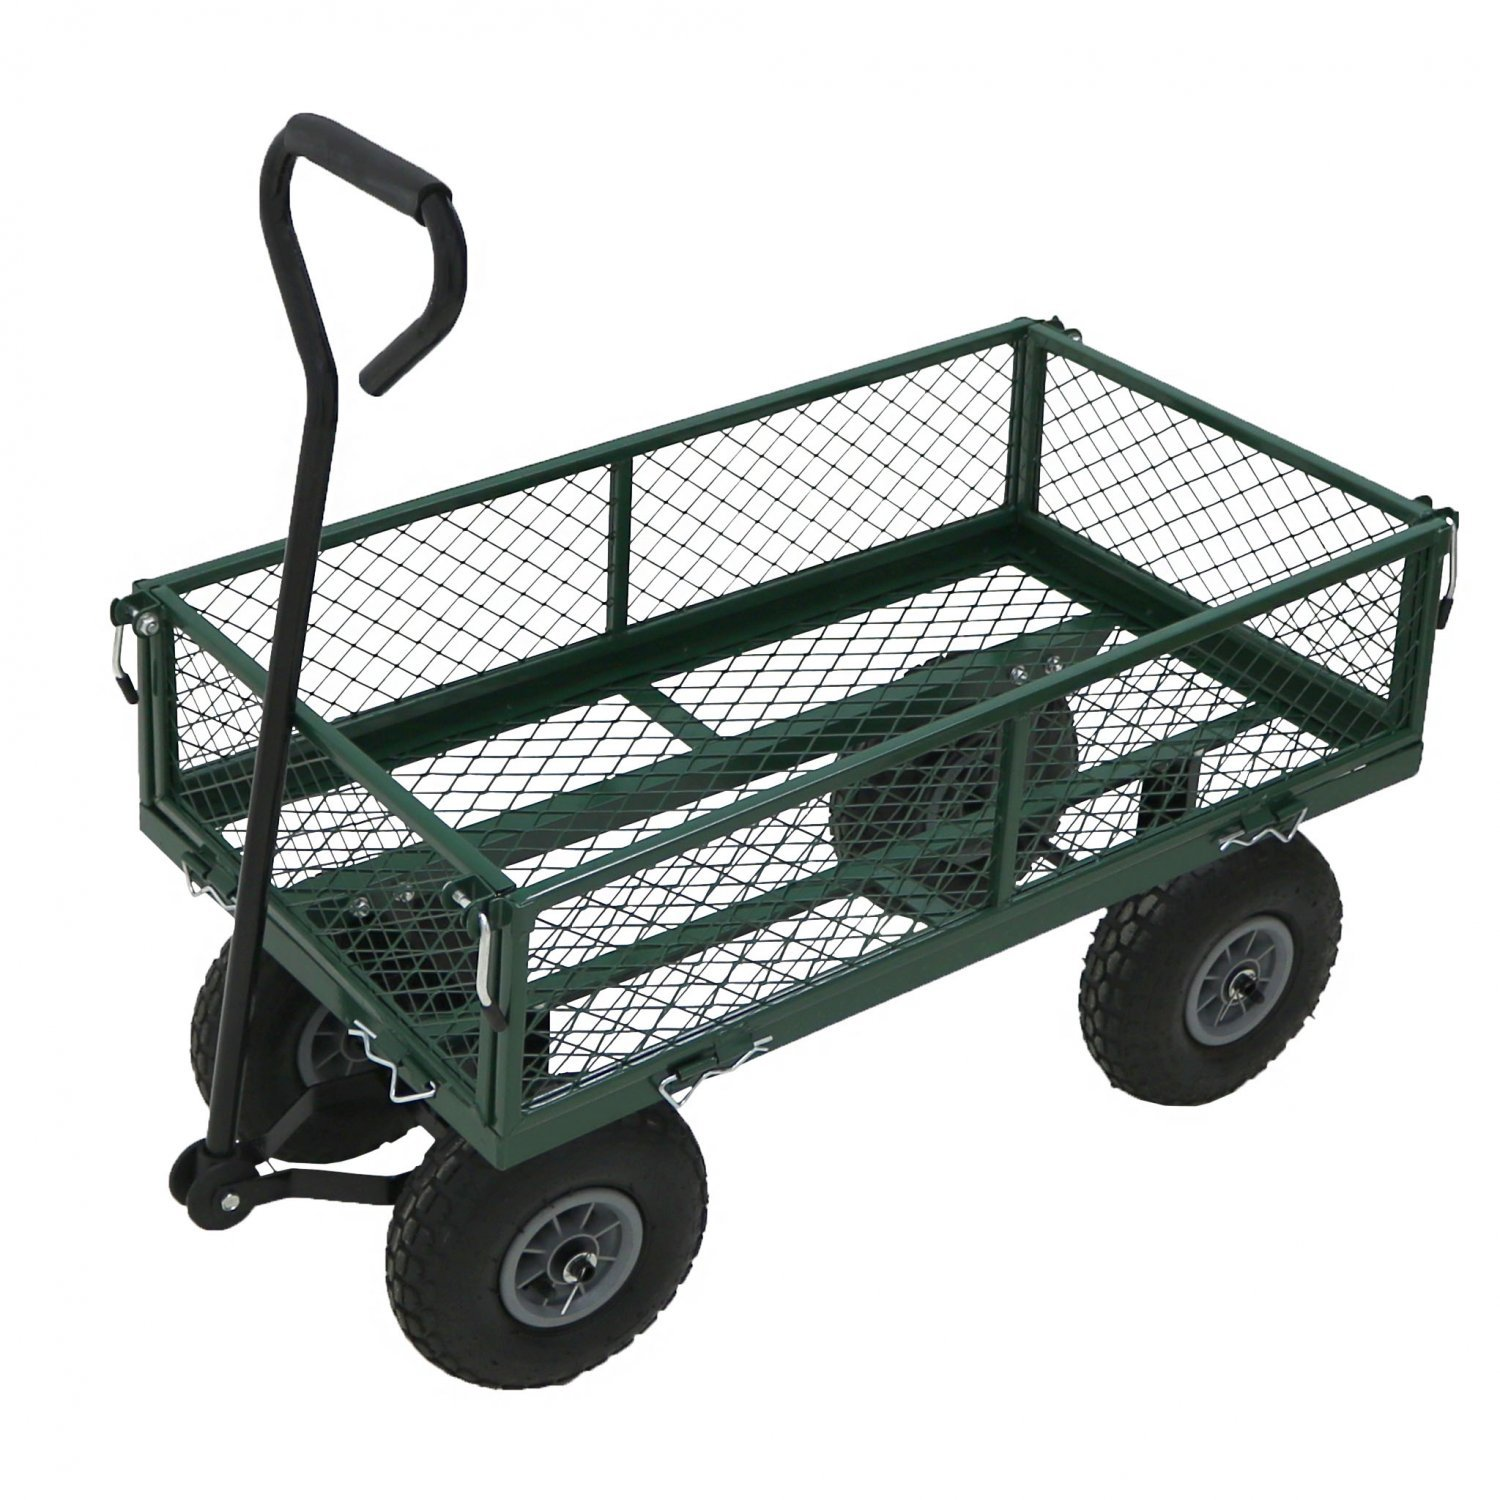 Heavy Duty Metal Gardening Trolley Green Trailer Cart